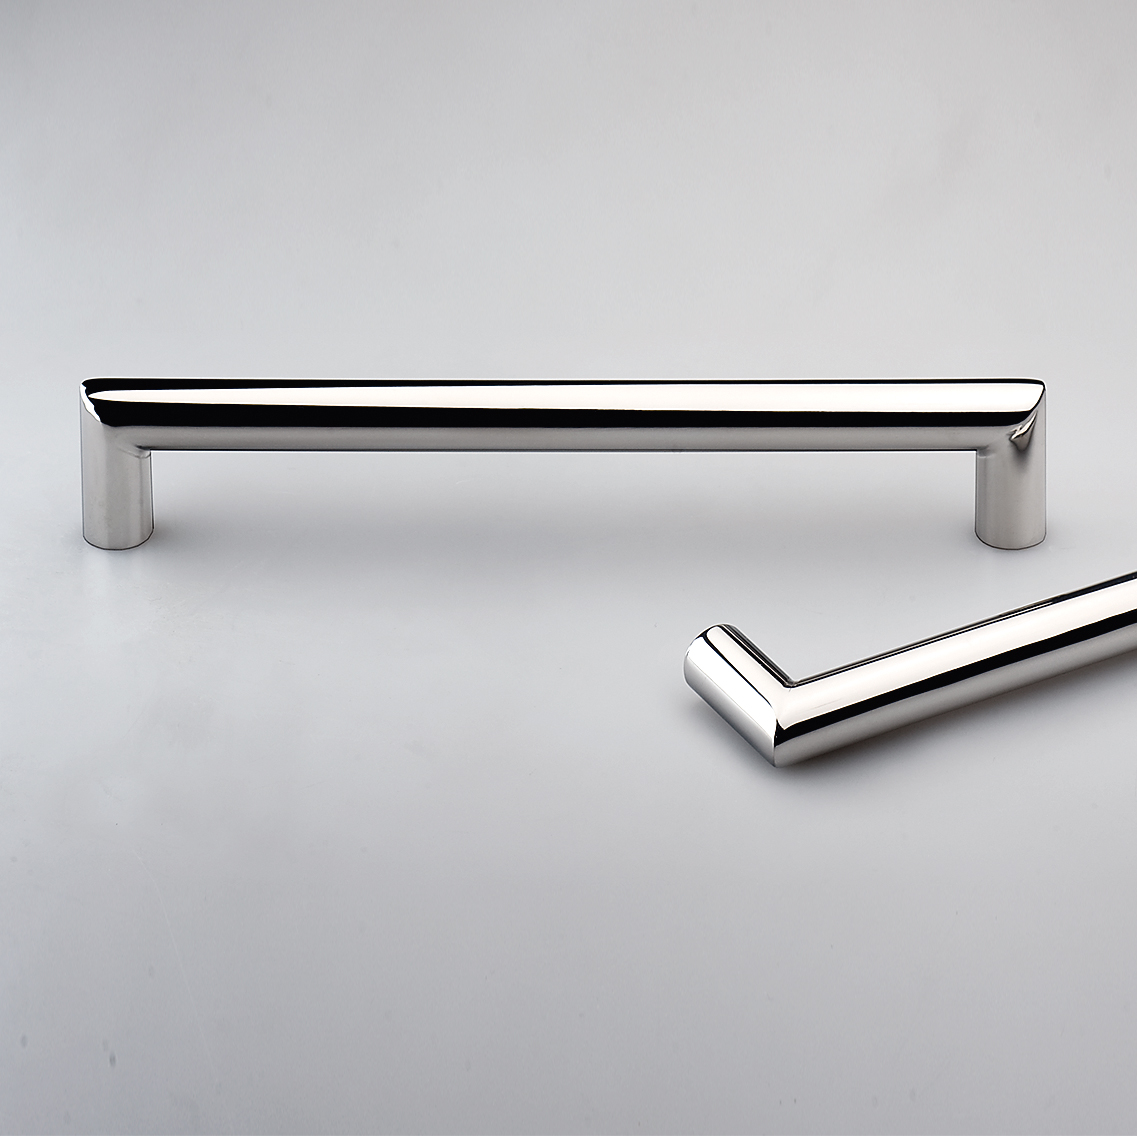 Lecco Polished Stainless Steel Kitchen Handles E5023